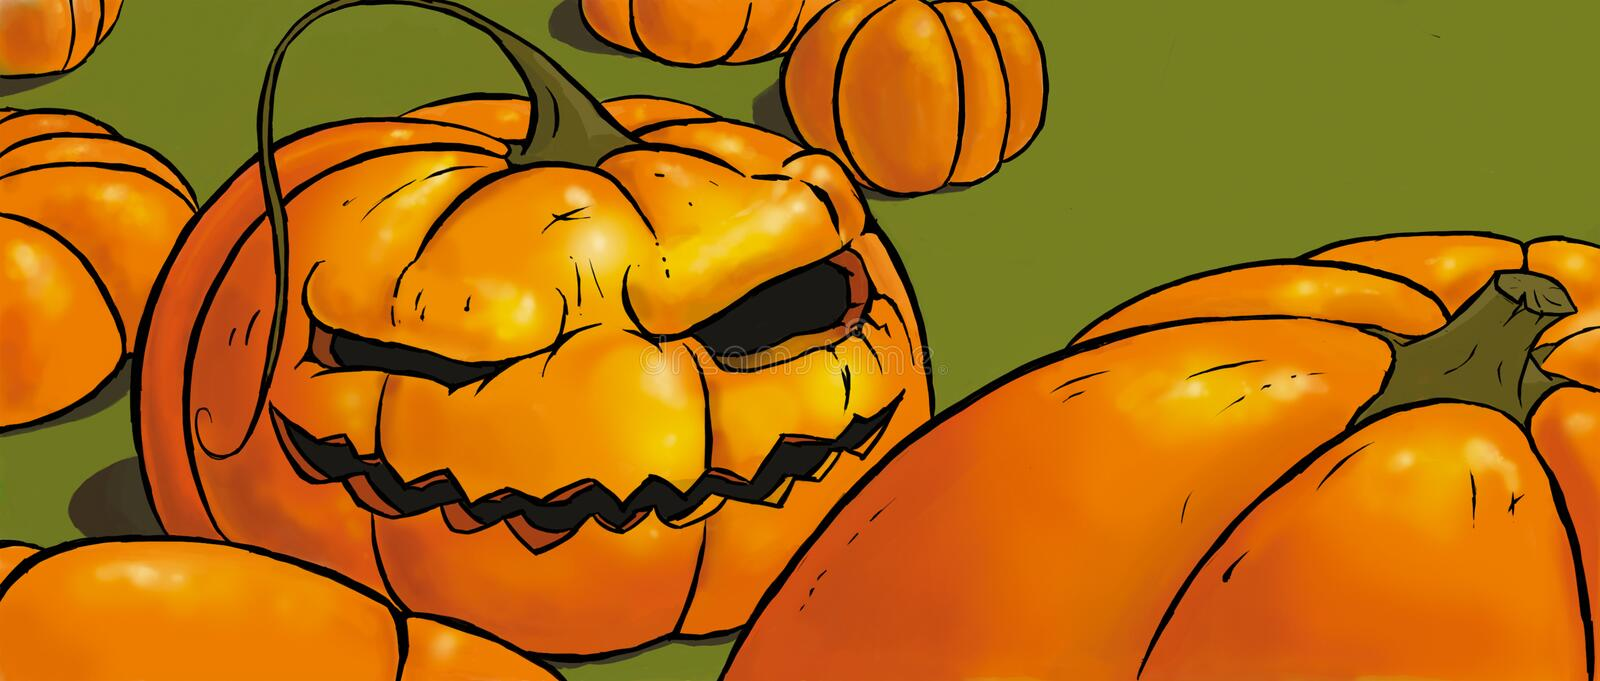 Wicked pumpkin royalty free stock image